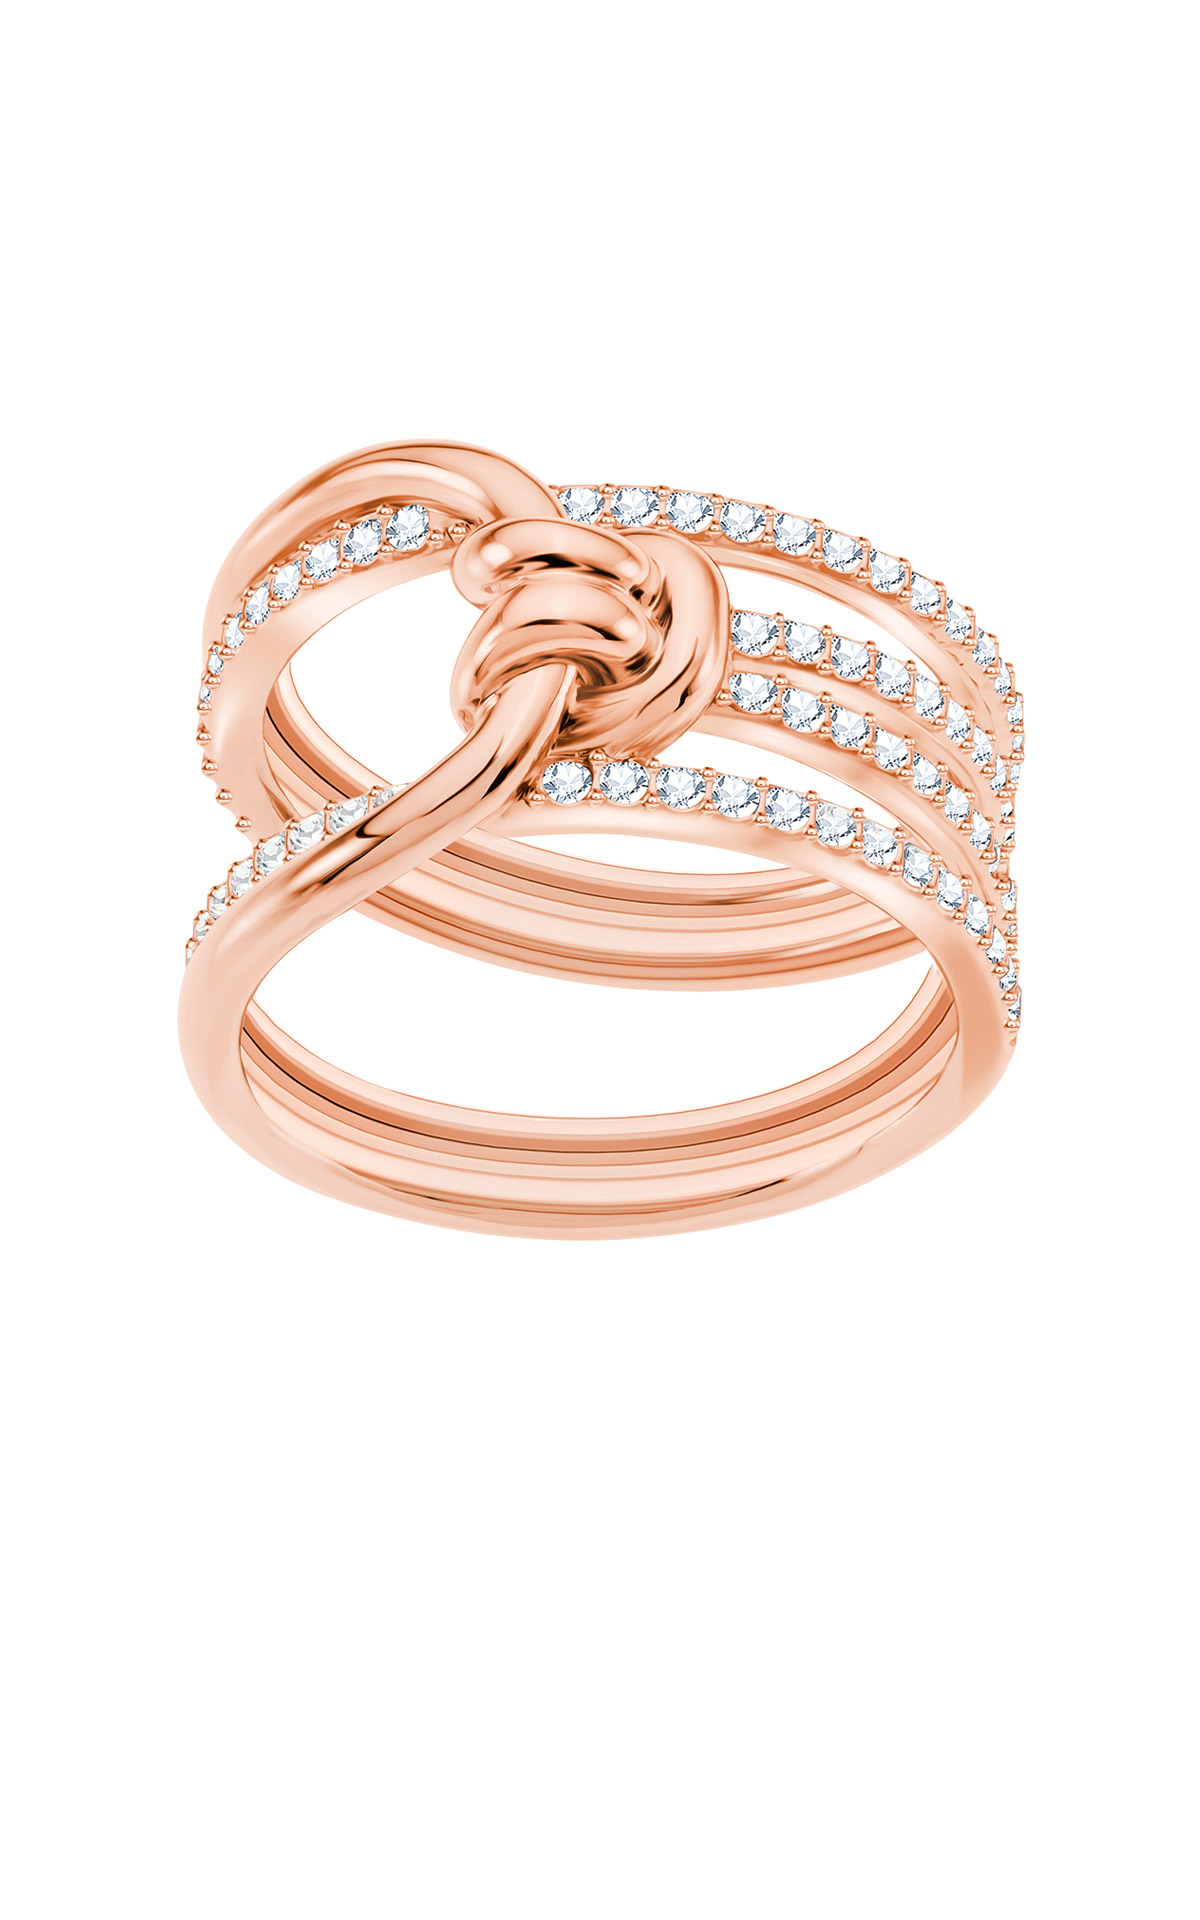 Rose gold ring Swarovsky